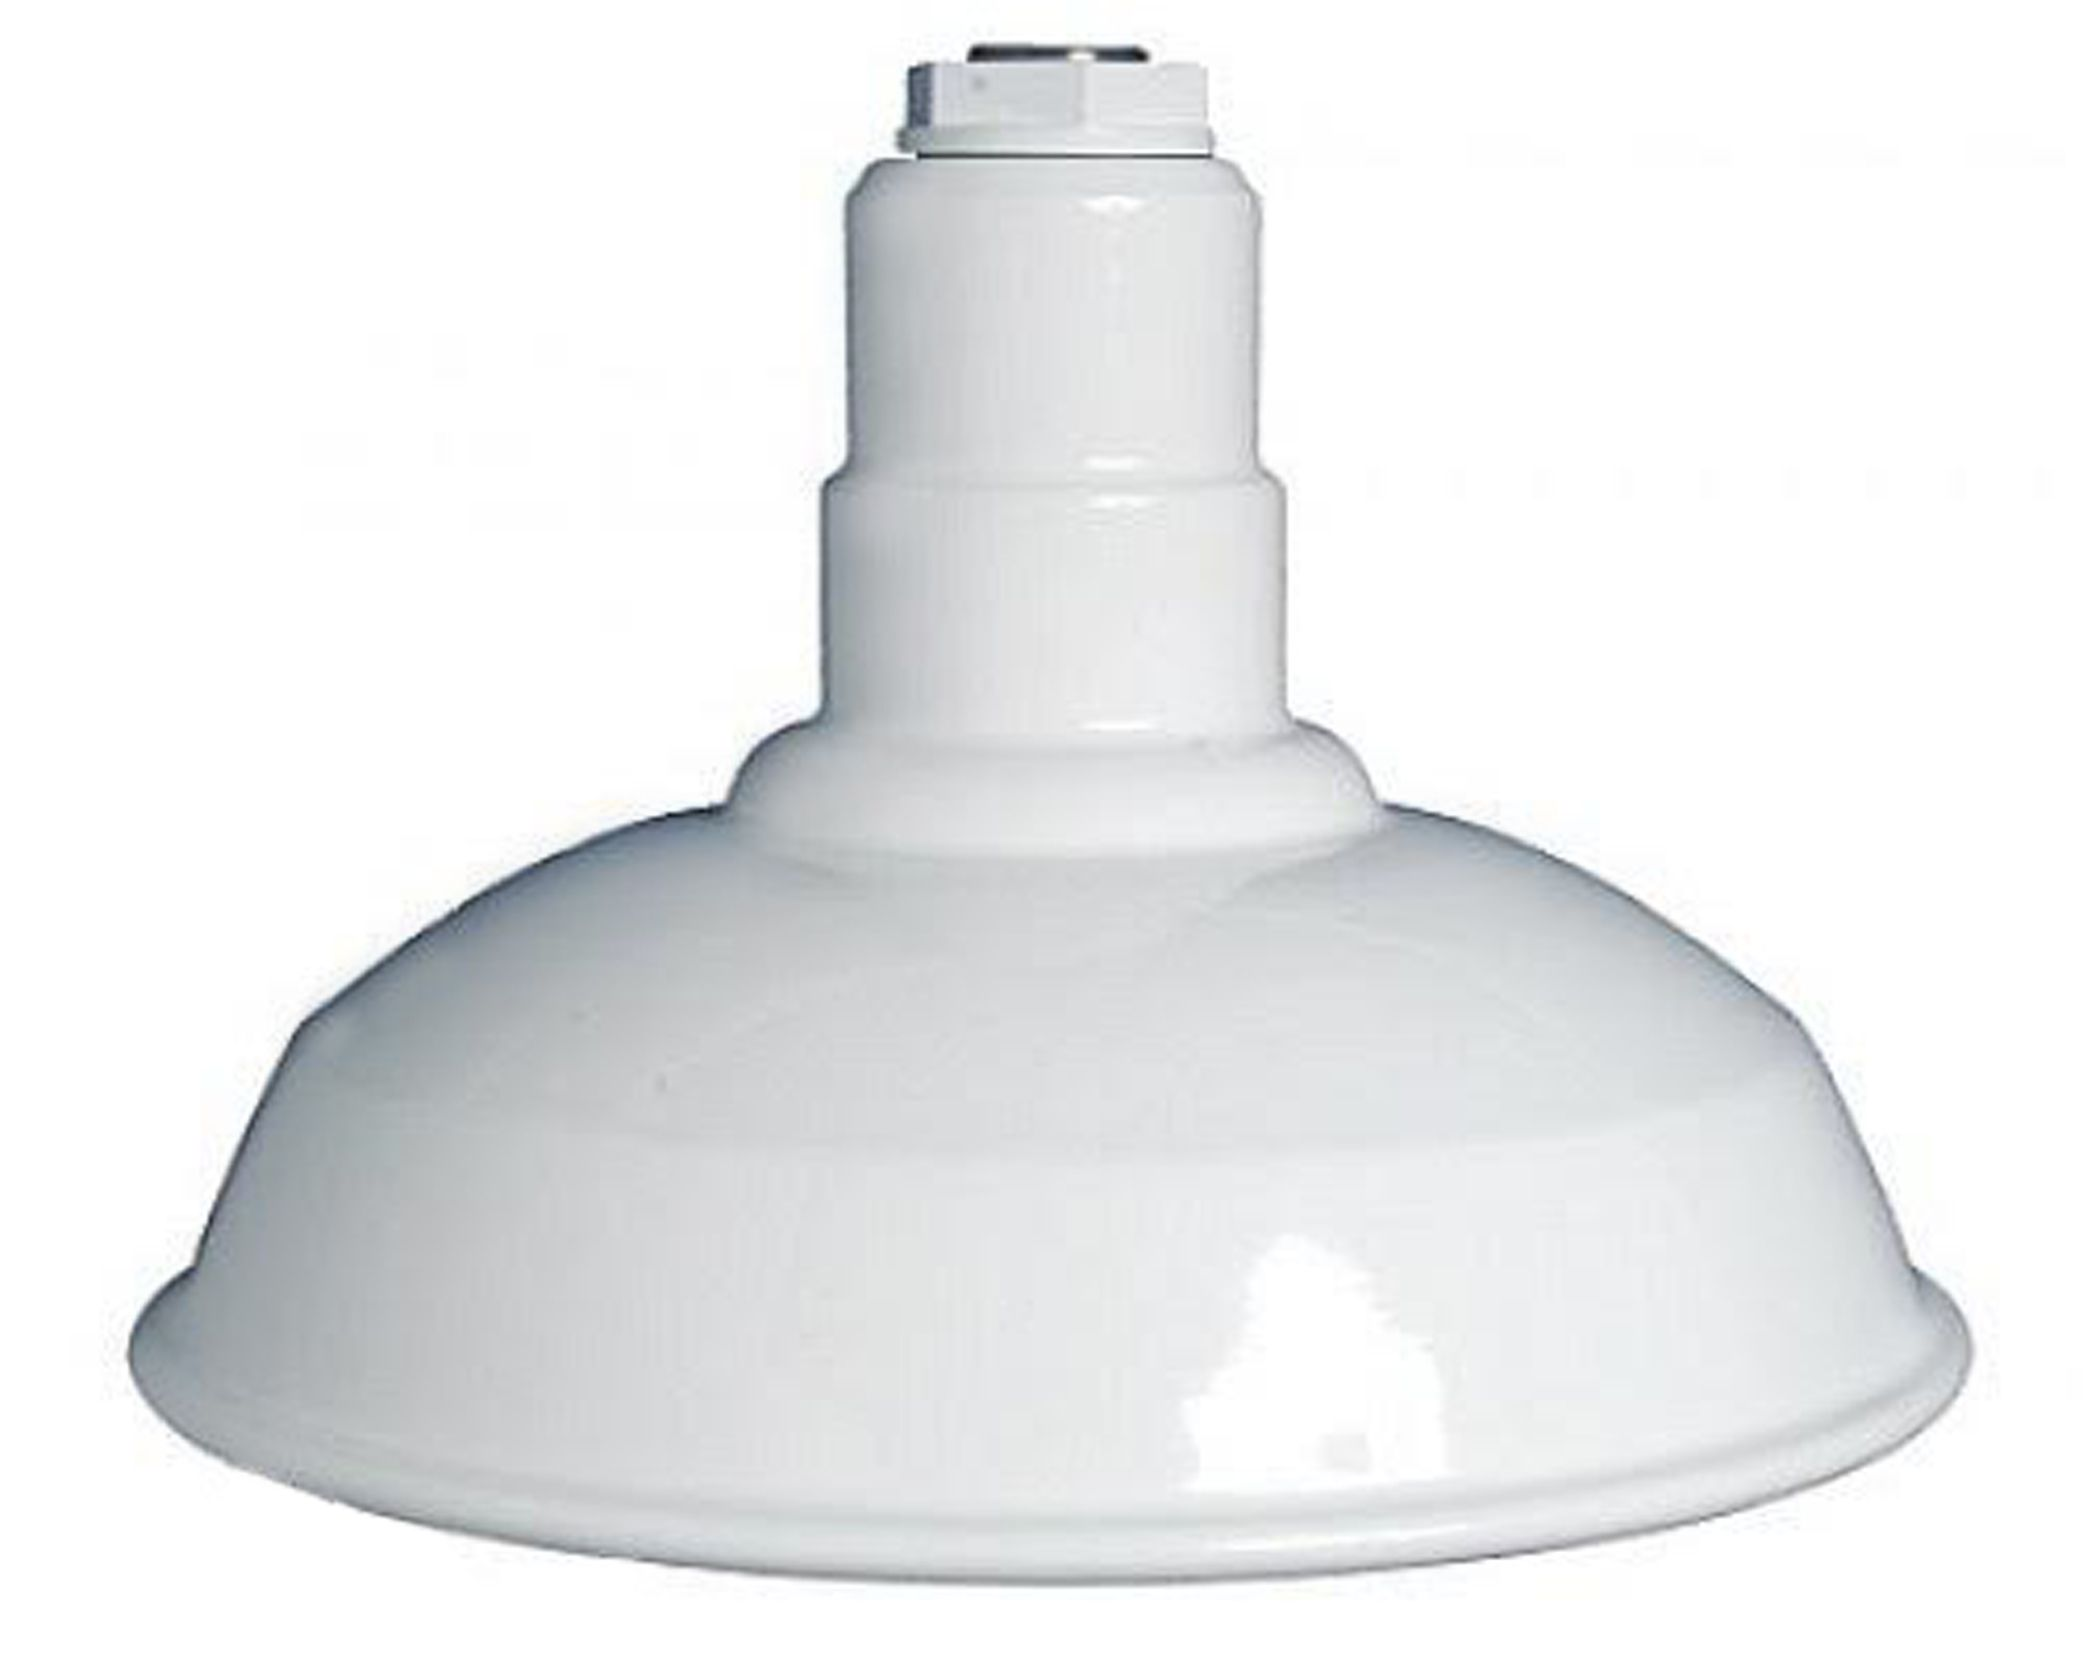 Alcon Lighting 15207 Clint Barn Light Series Architectural Led Round High Bay Fixture